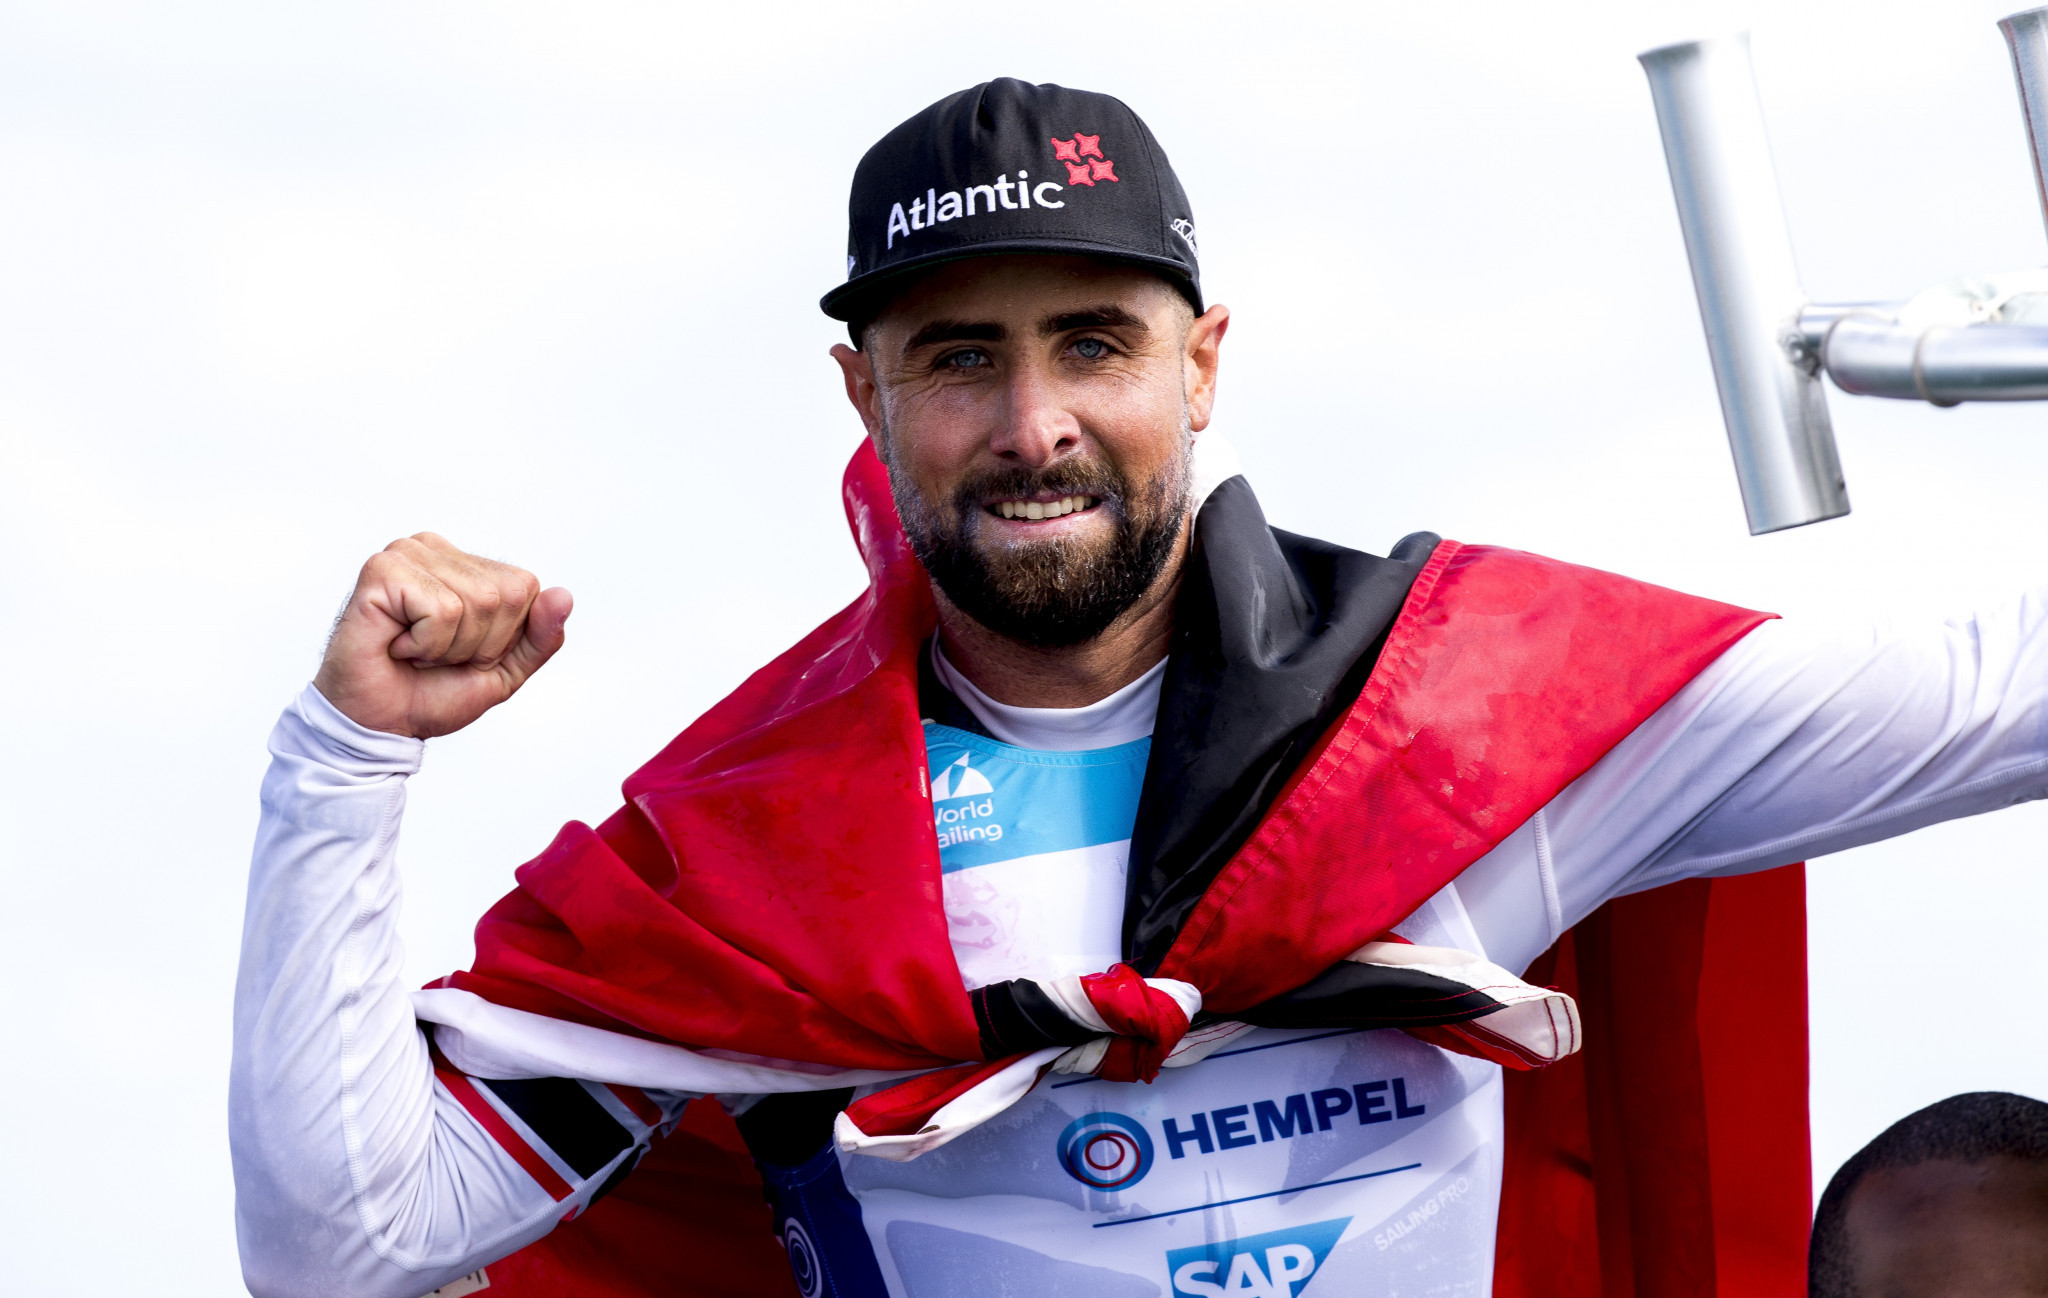 Trinidad and Tobago's Andrew Lewis booked his place at Tokyo 2020 in a dramatic medal race in Miami ©World Sailing